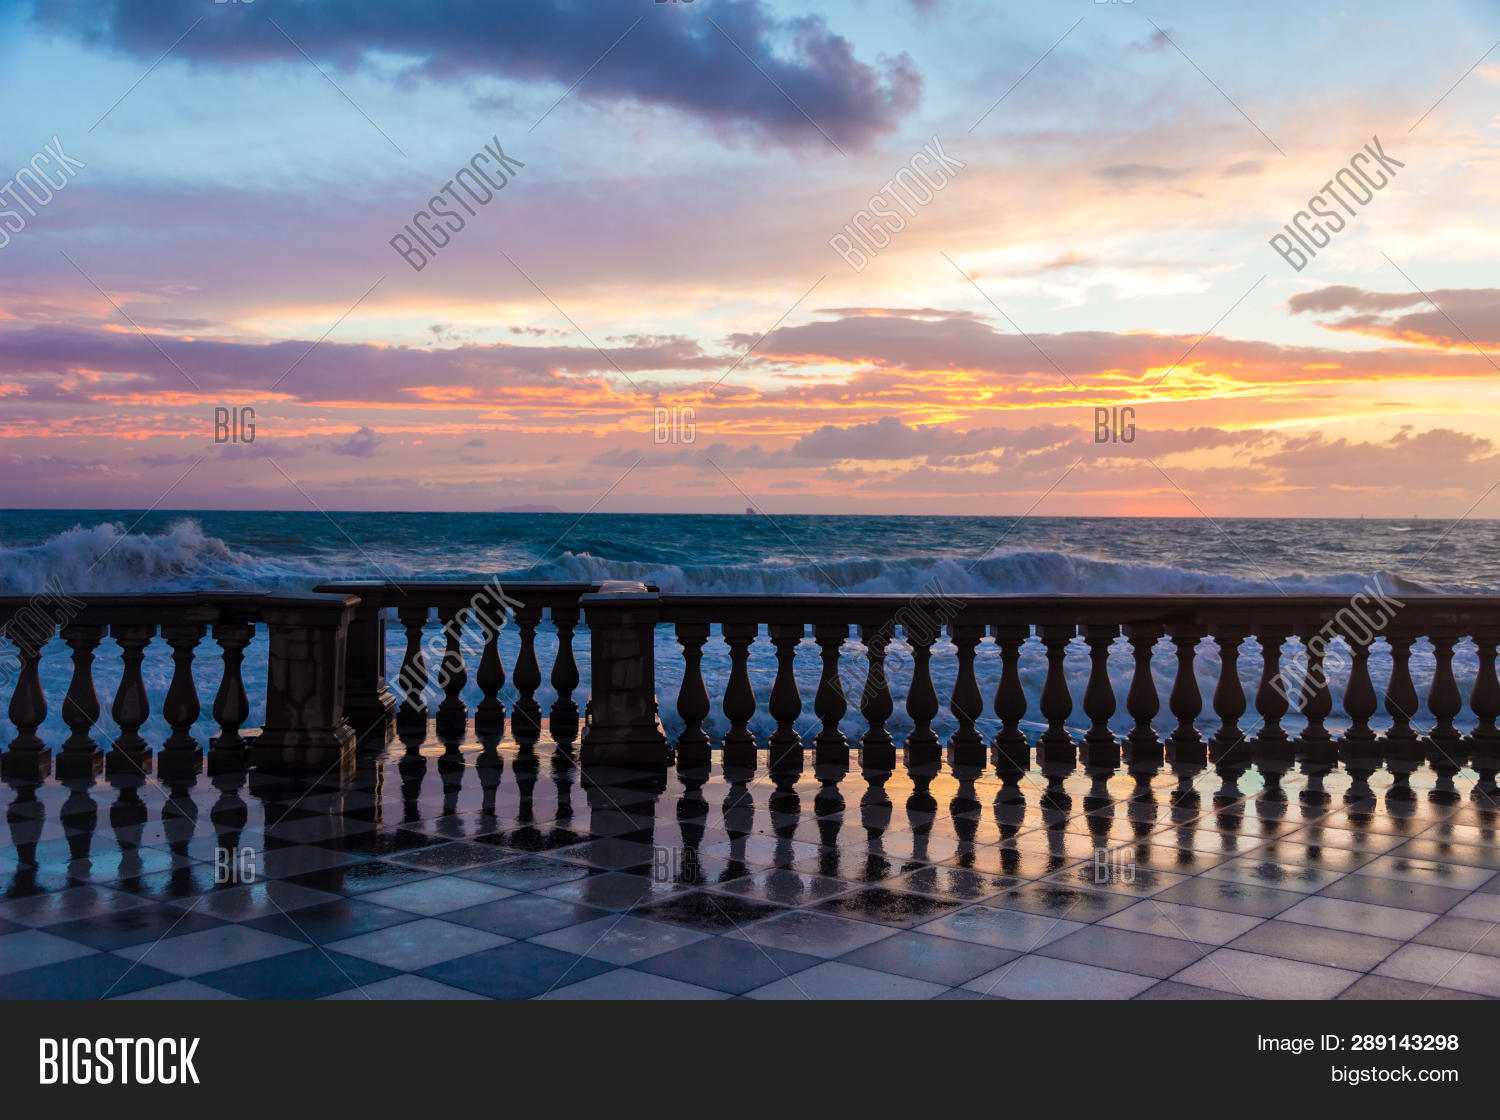 Terrazza Mascagni Wide Image Photo Free Trial Bigstock